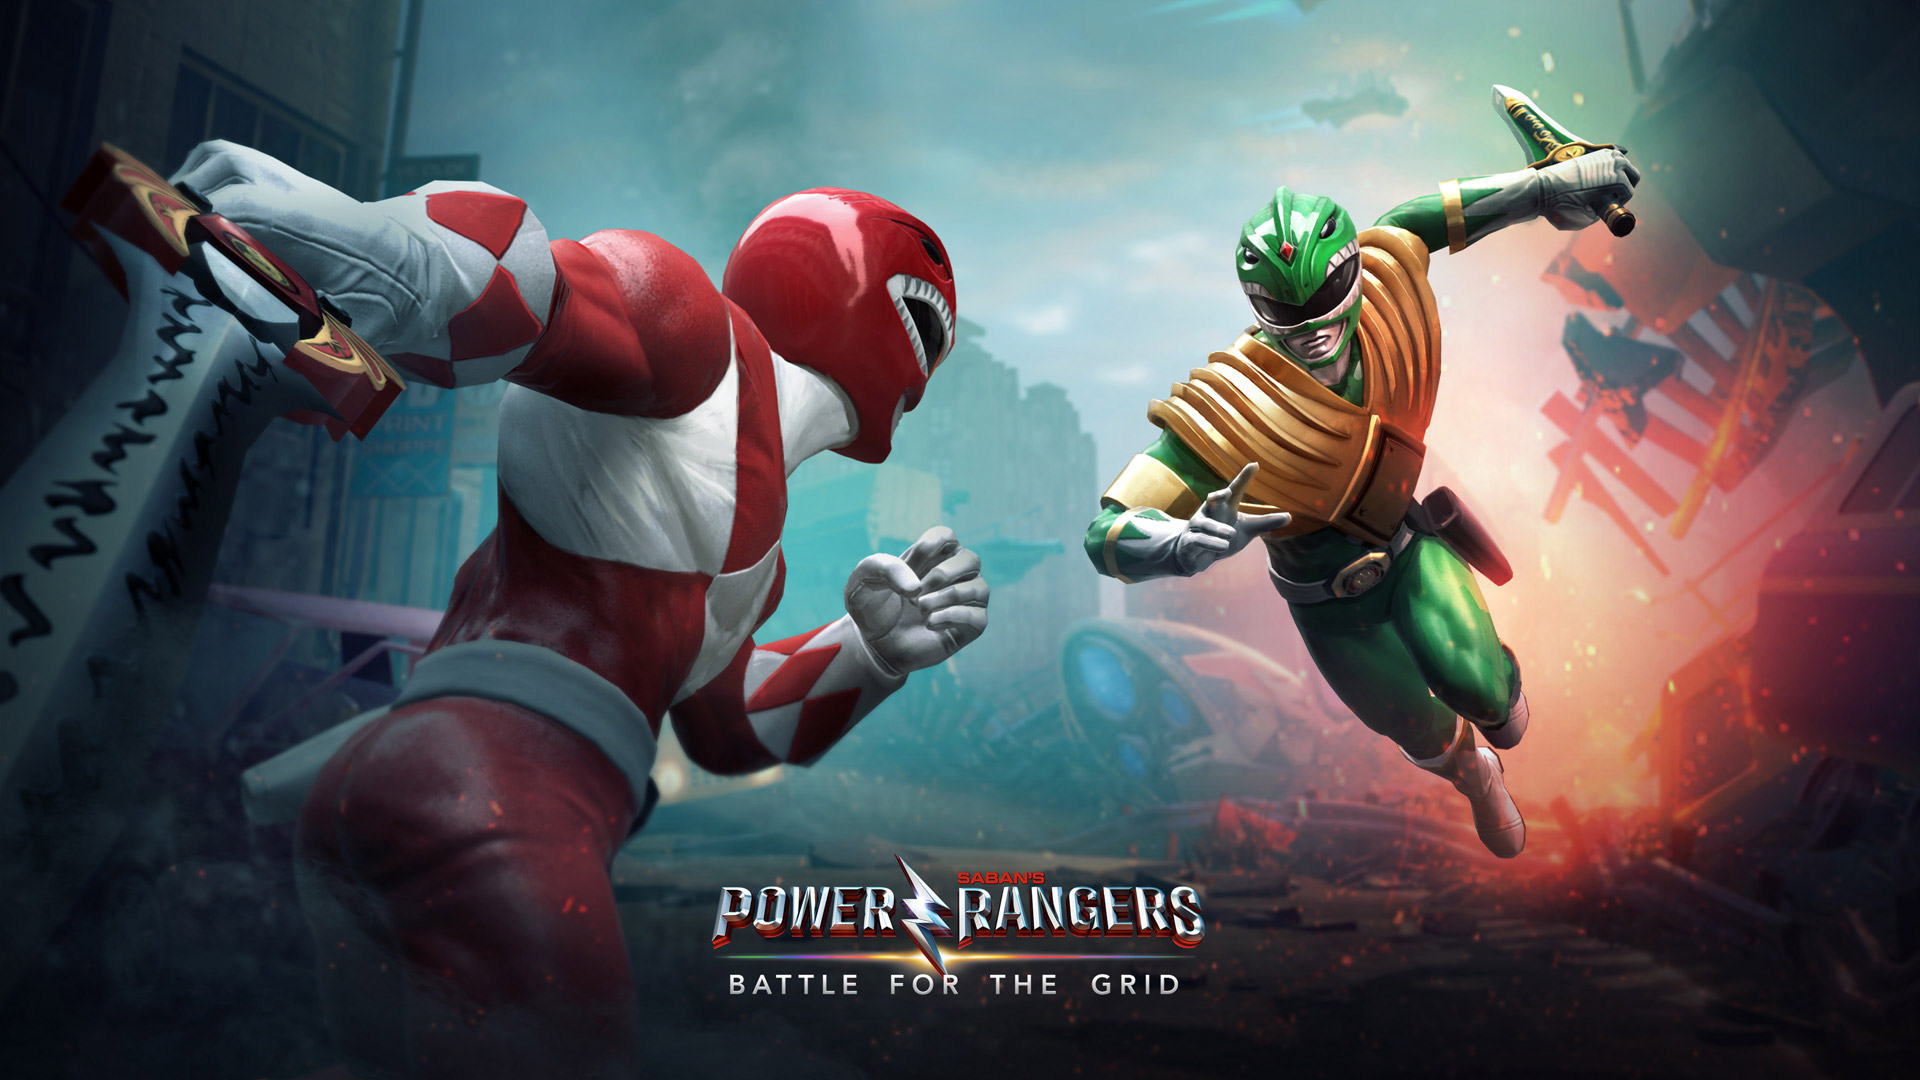 Free Power Rangers: Battle for the Grid Wallpaper in 1920x1080